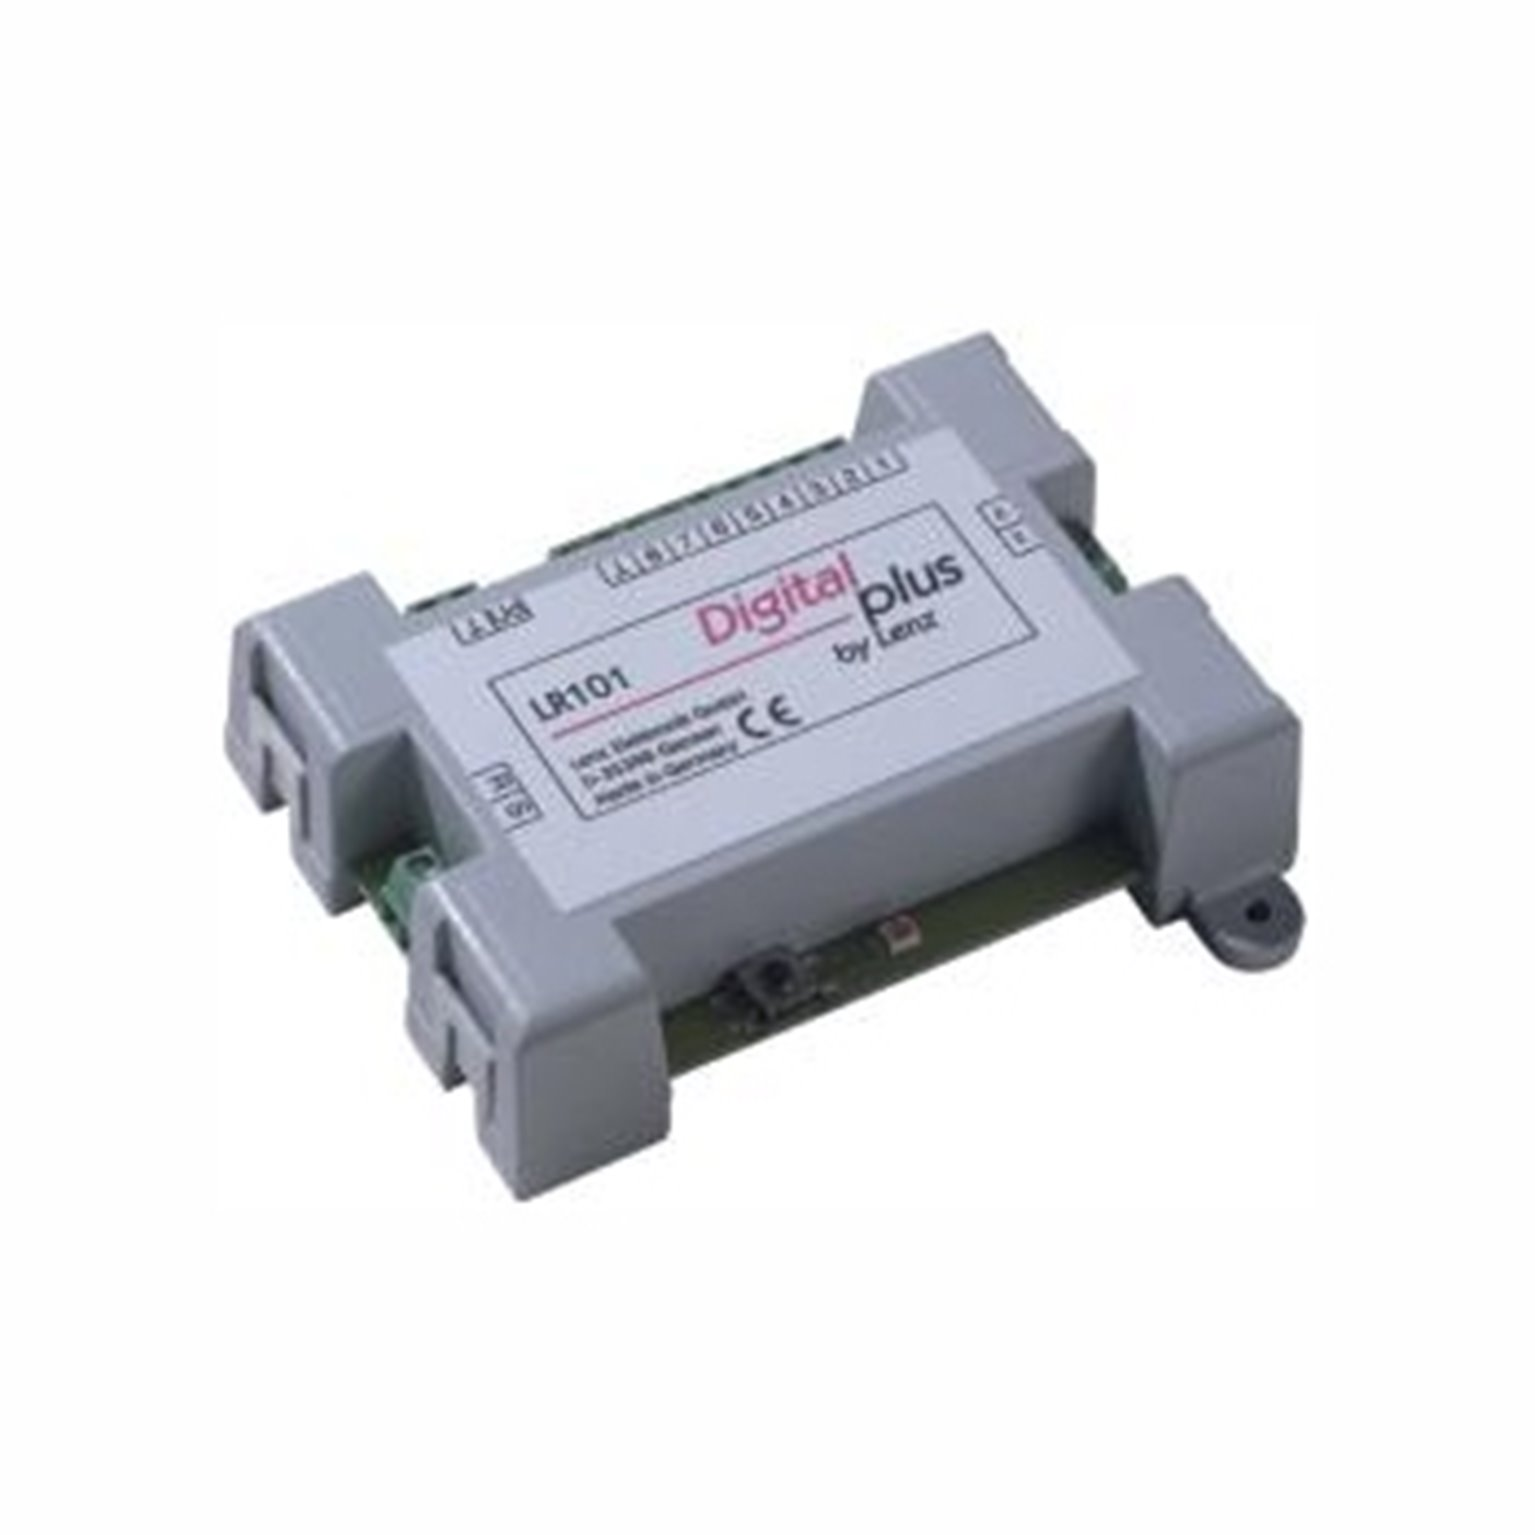 LR101 Feedback module with 8 outlets